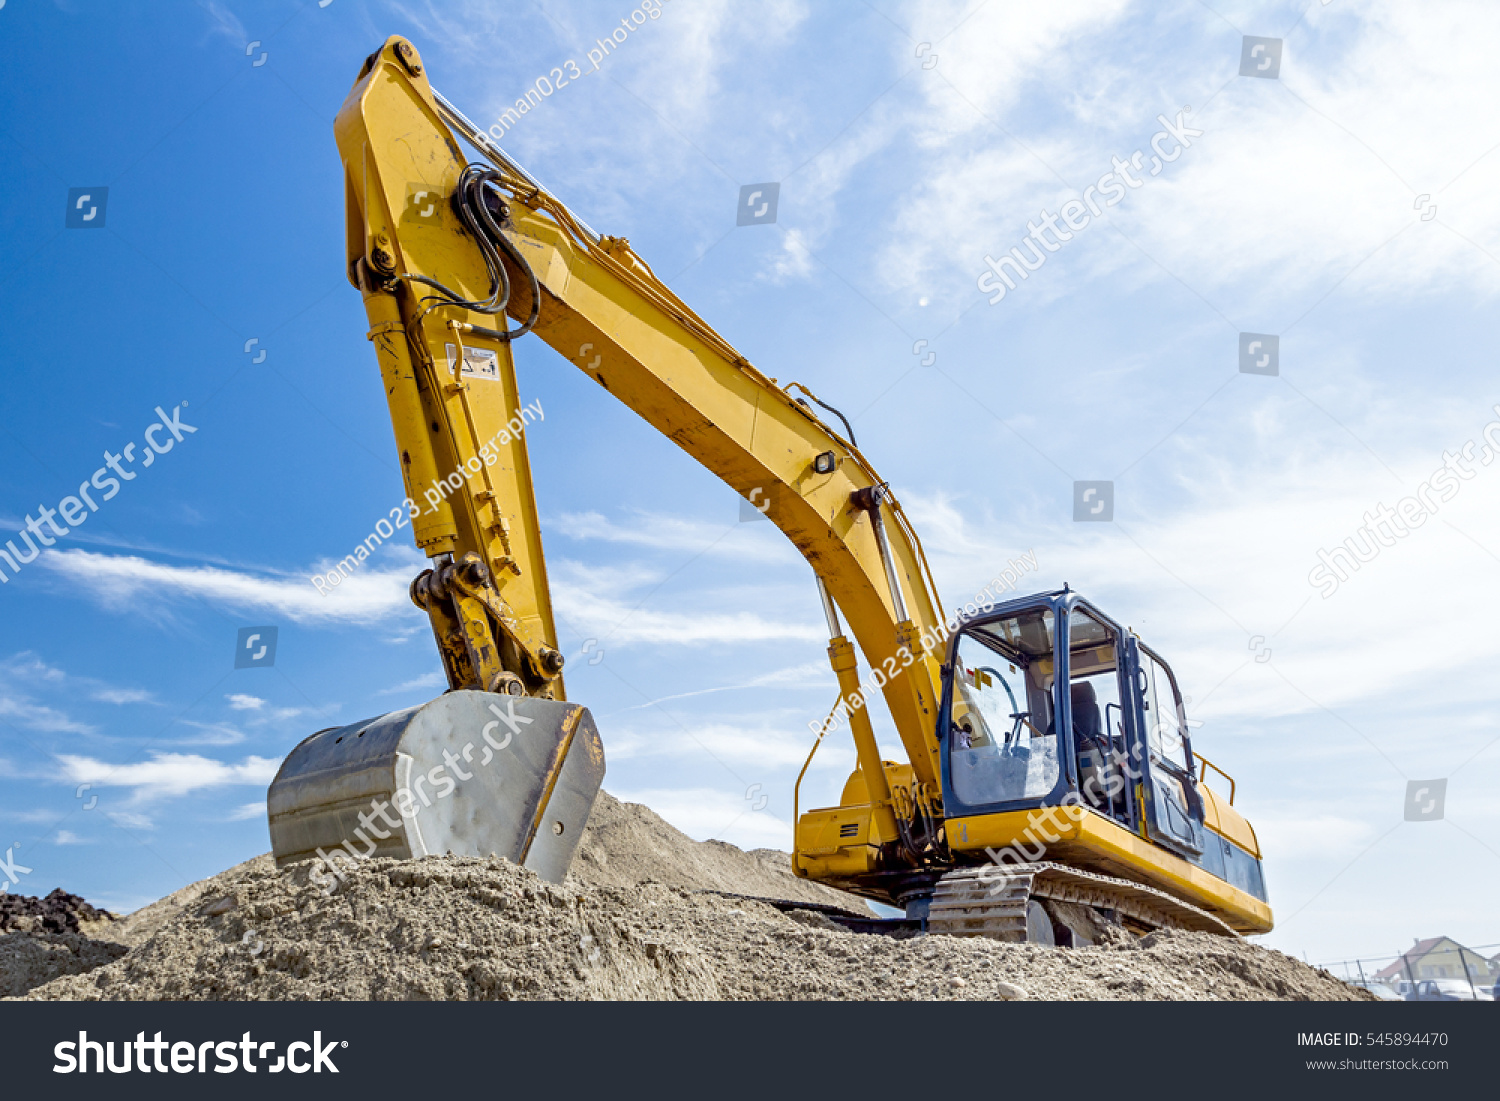 Construction Site Soil : Yellow excavator making pile soil by stock photo